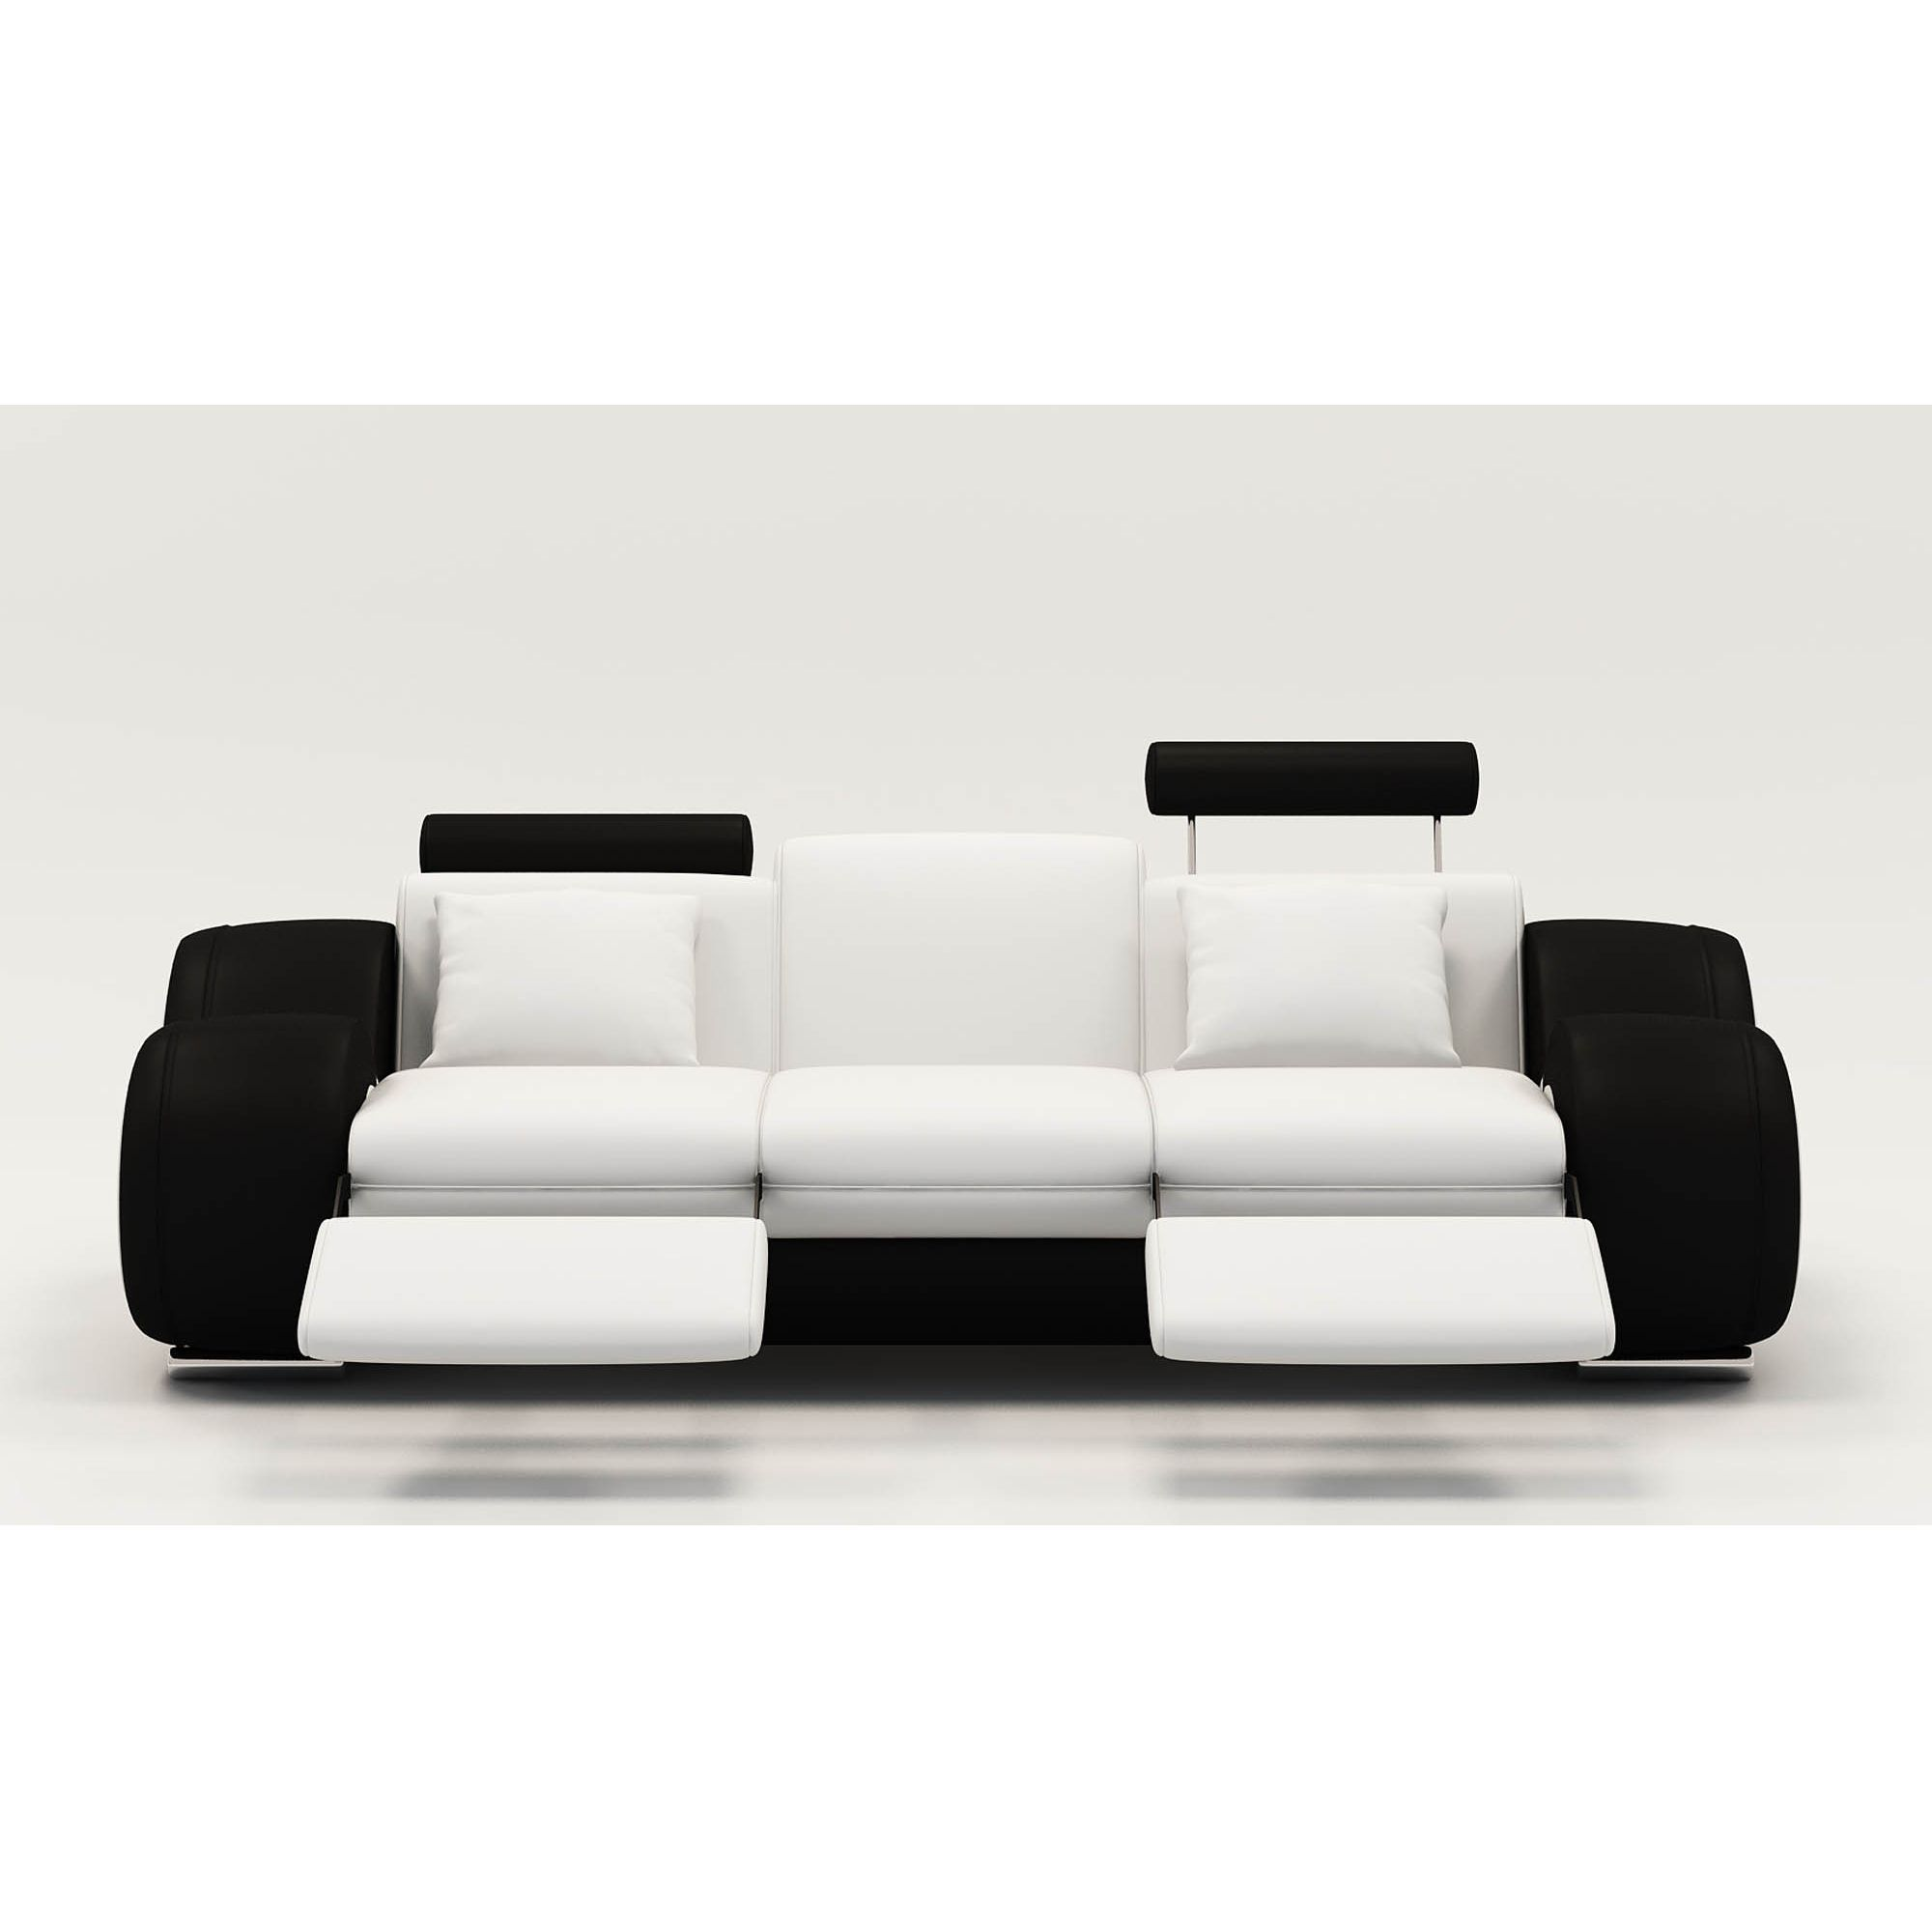 Deco in paris canape design 3 places cuir noir et blanc - Canape design 3 places ...